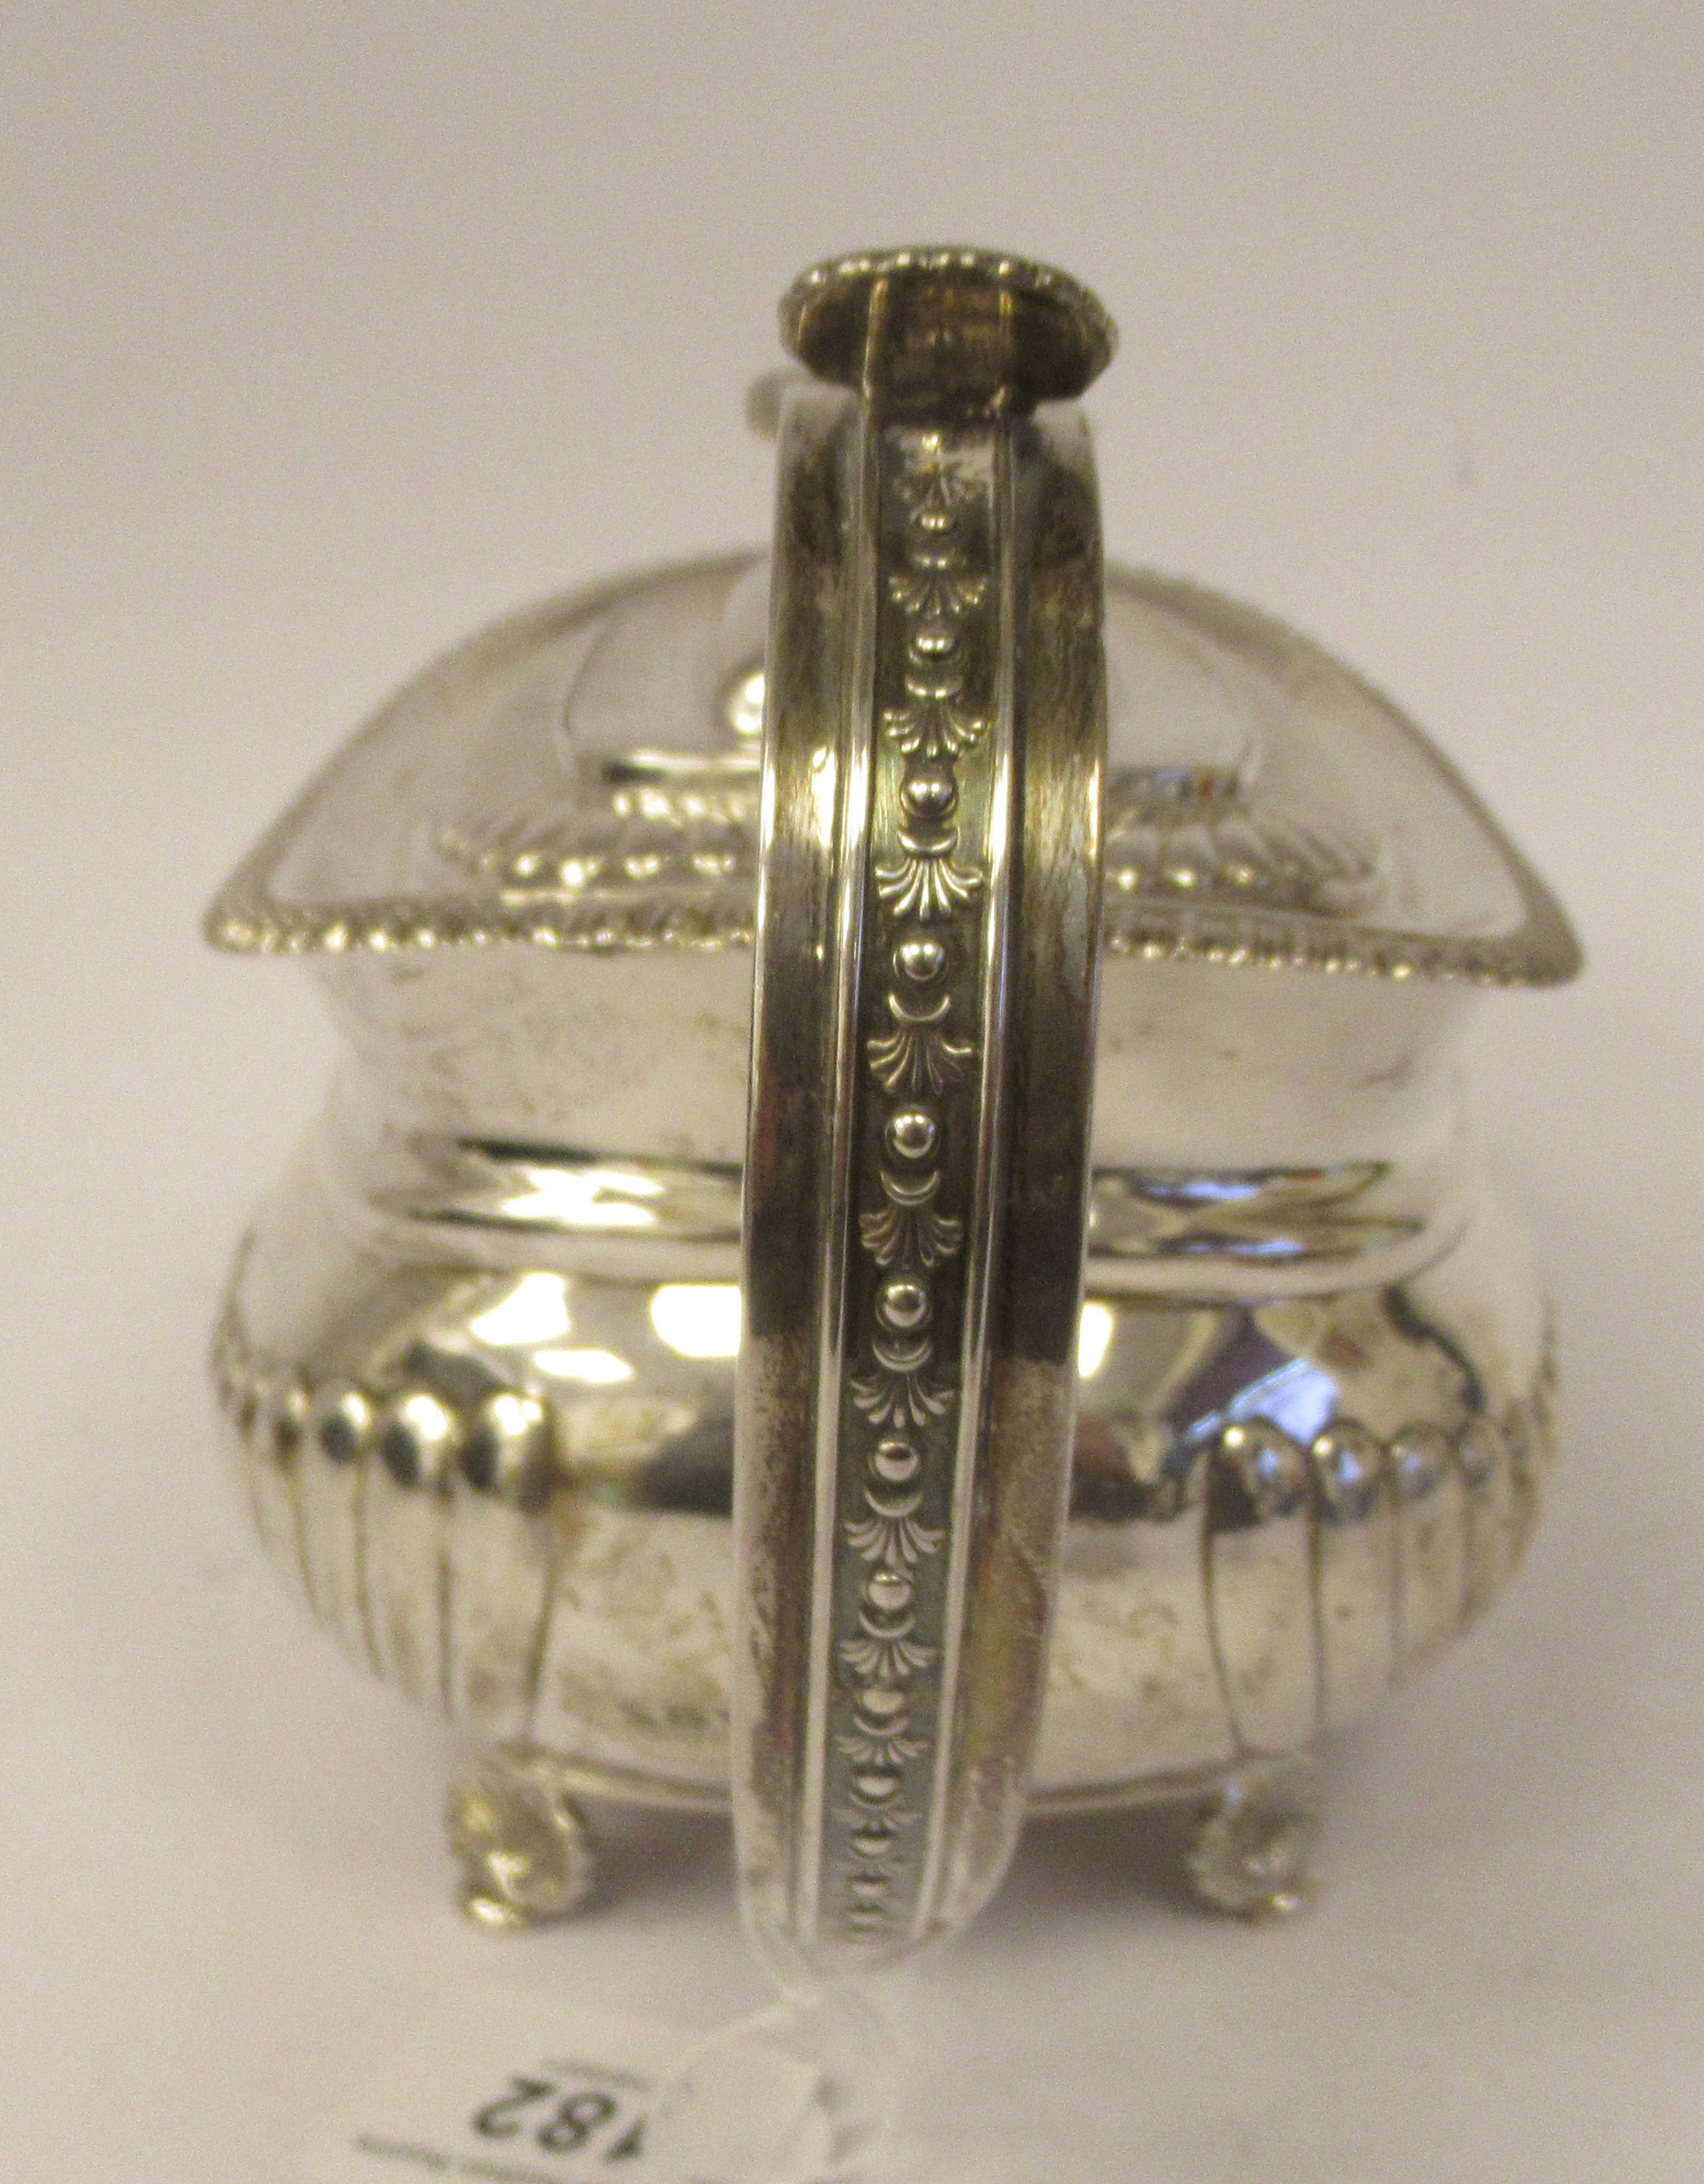 A George III silver teapot of squat, bulbous circular form with floral and foliate cast ornament, - Image 4 of 7